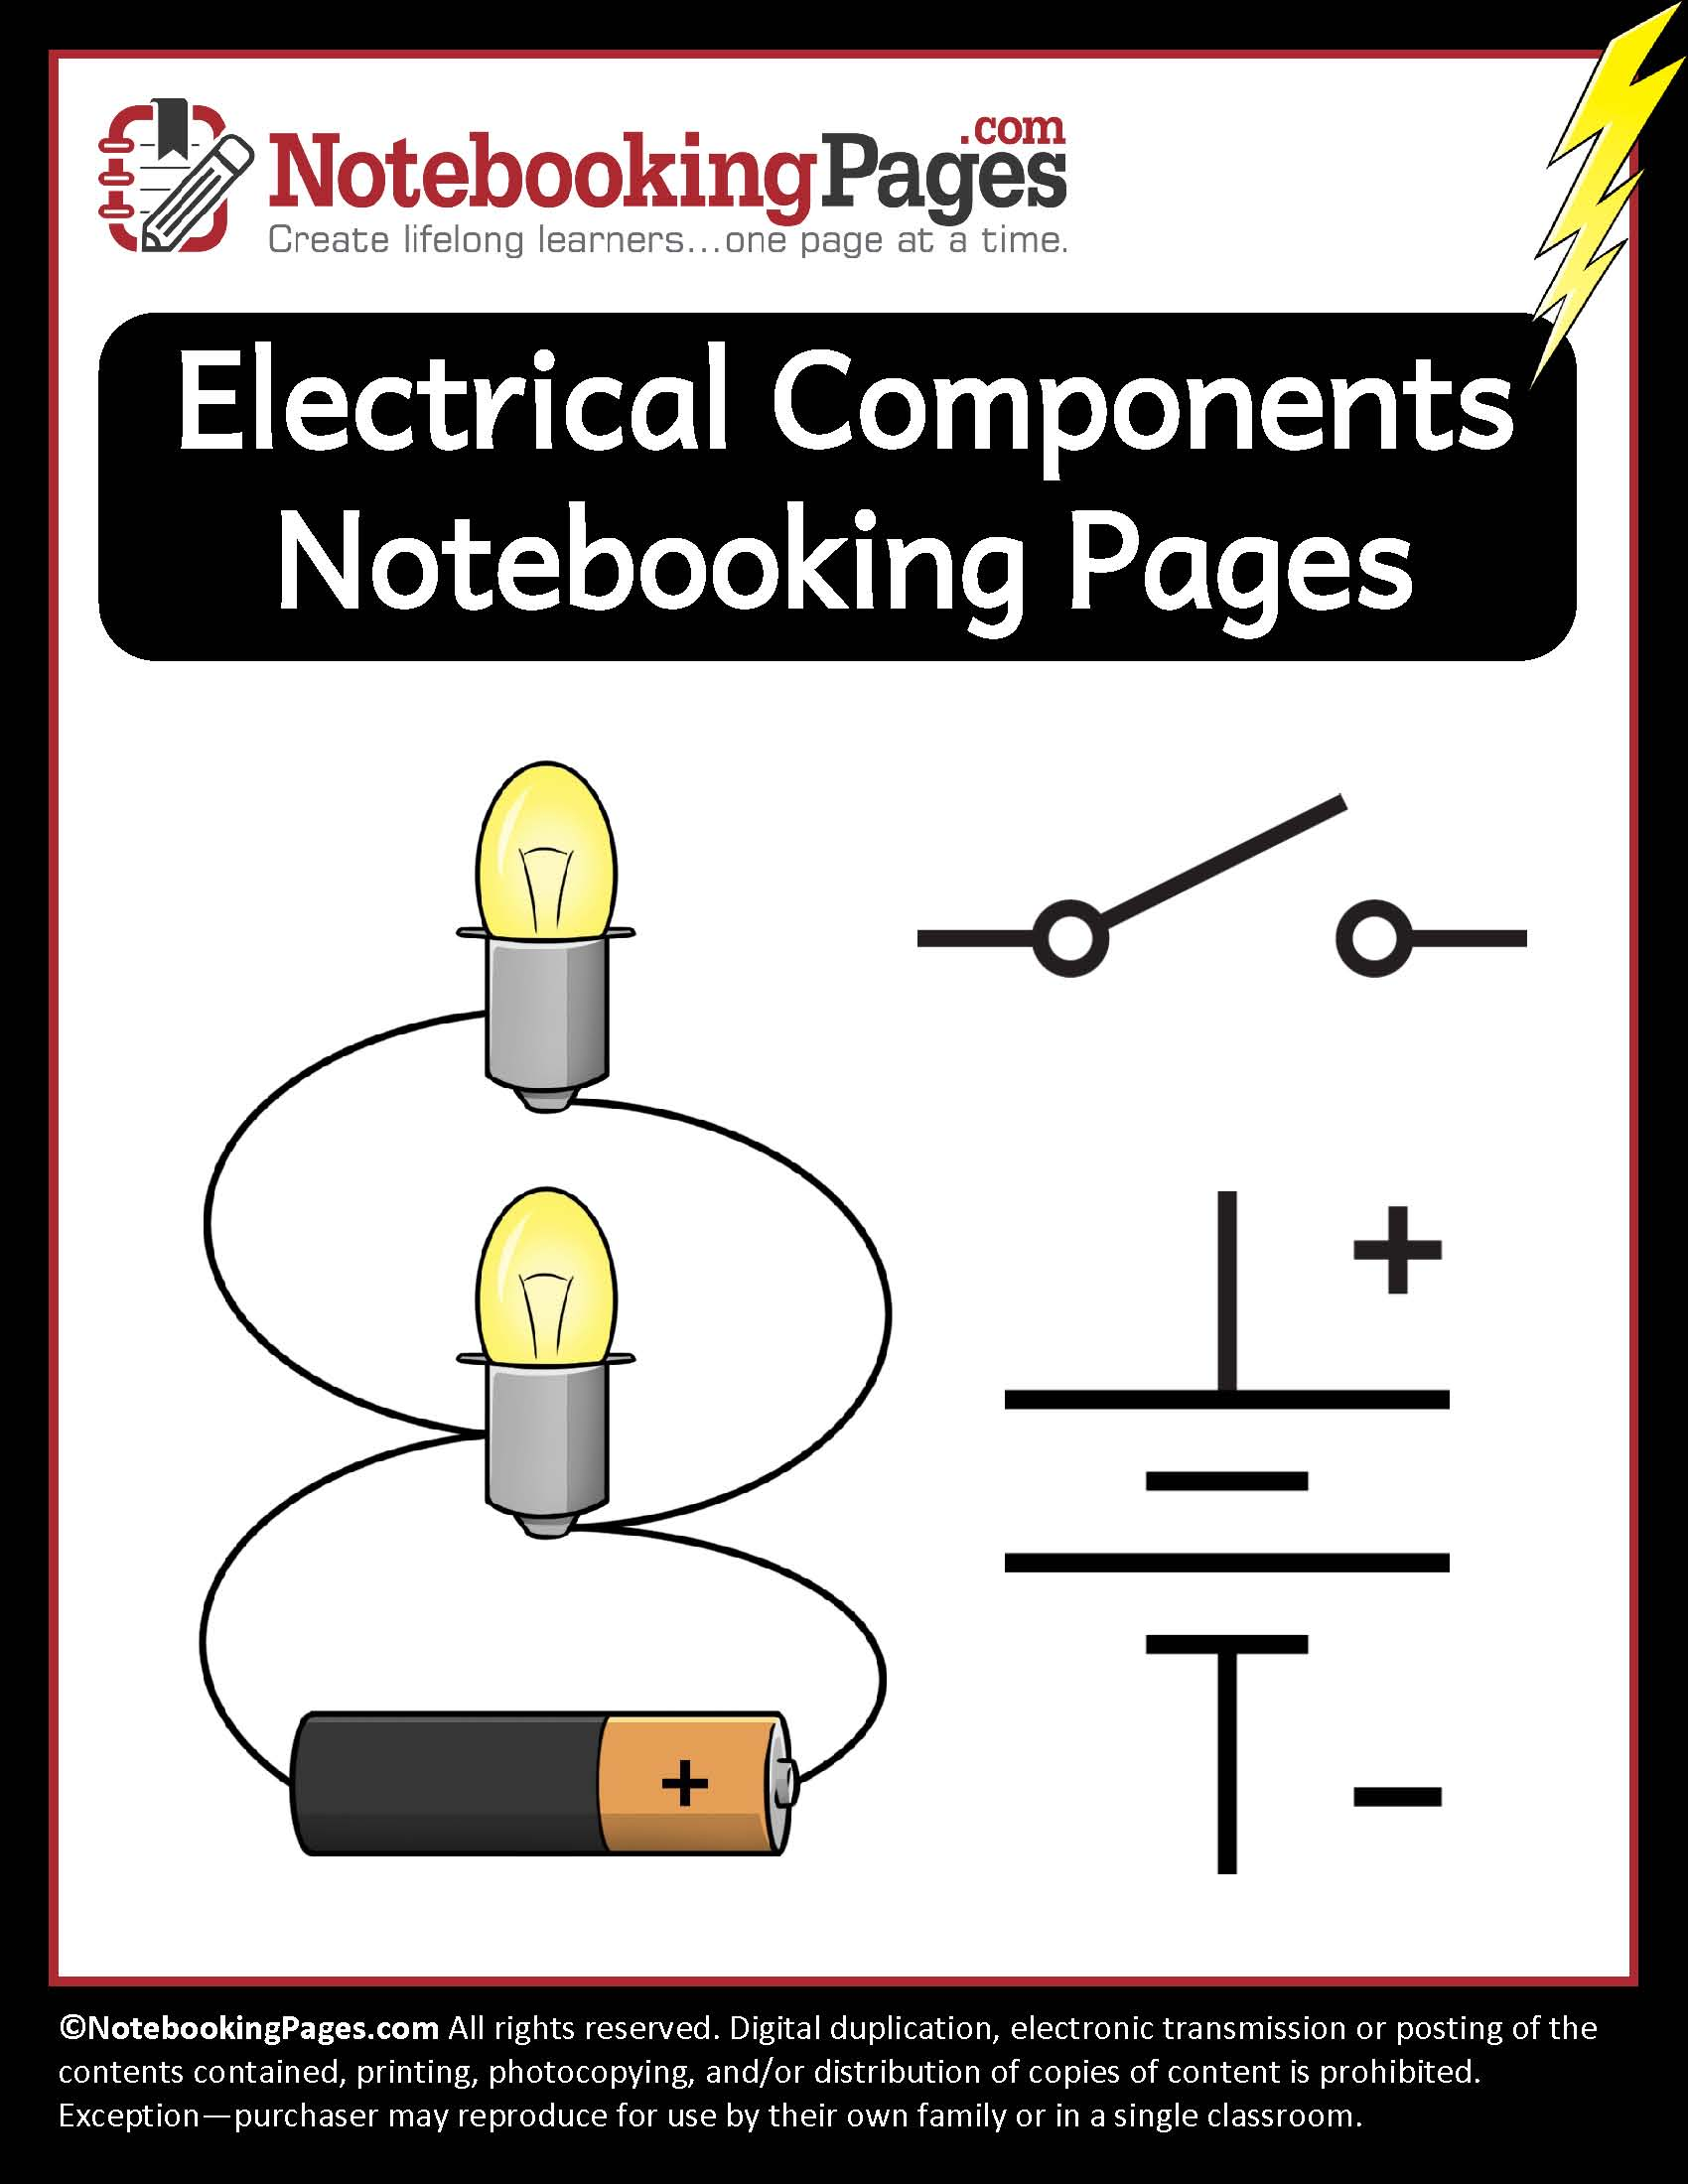 Electrical Components Notebooking Pages